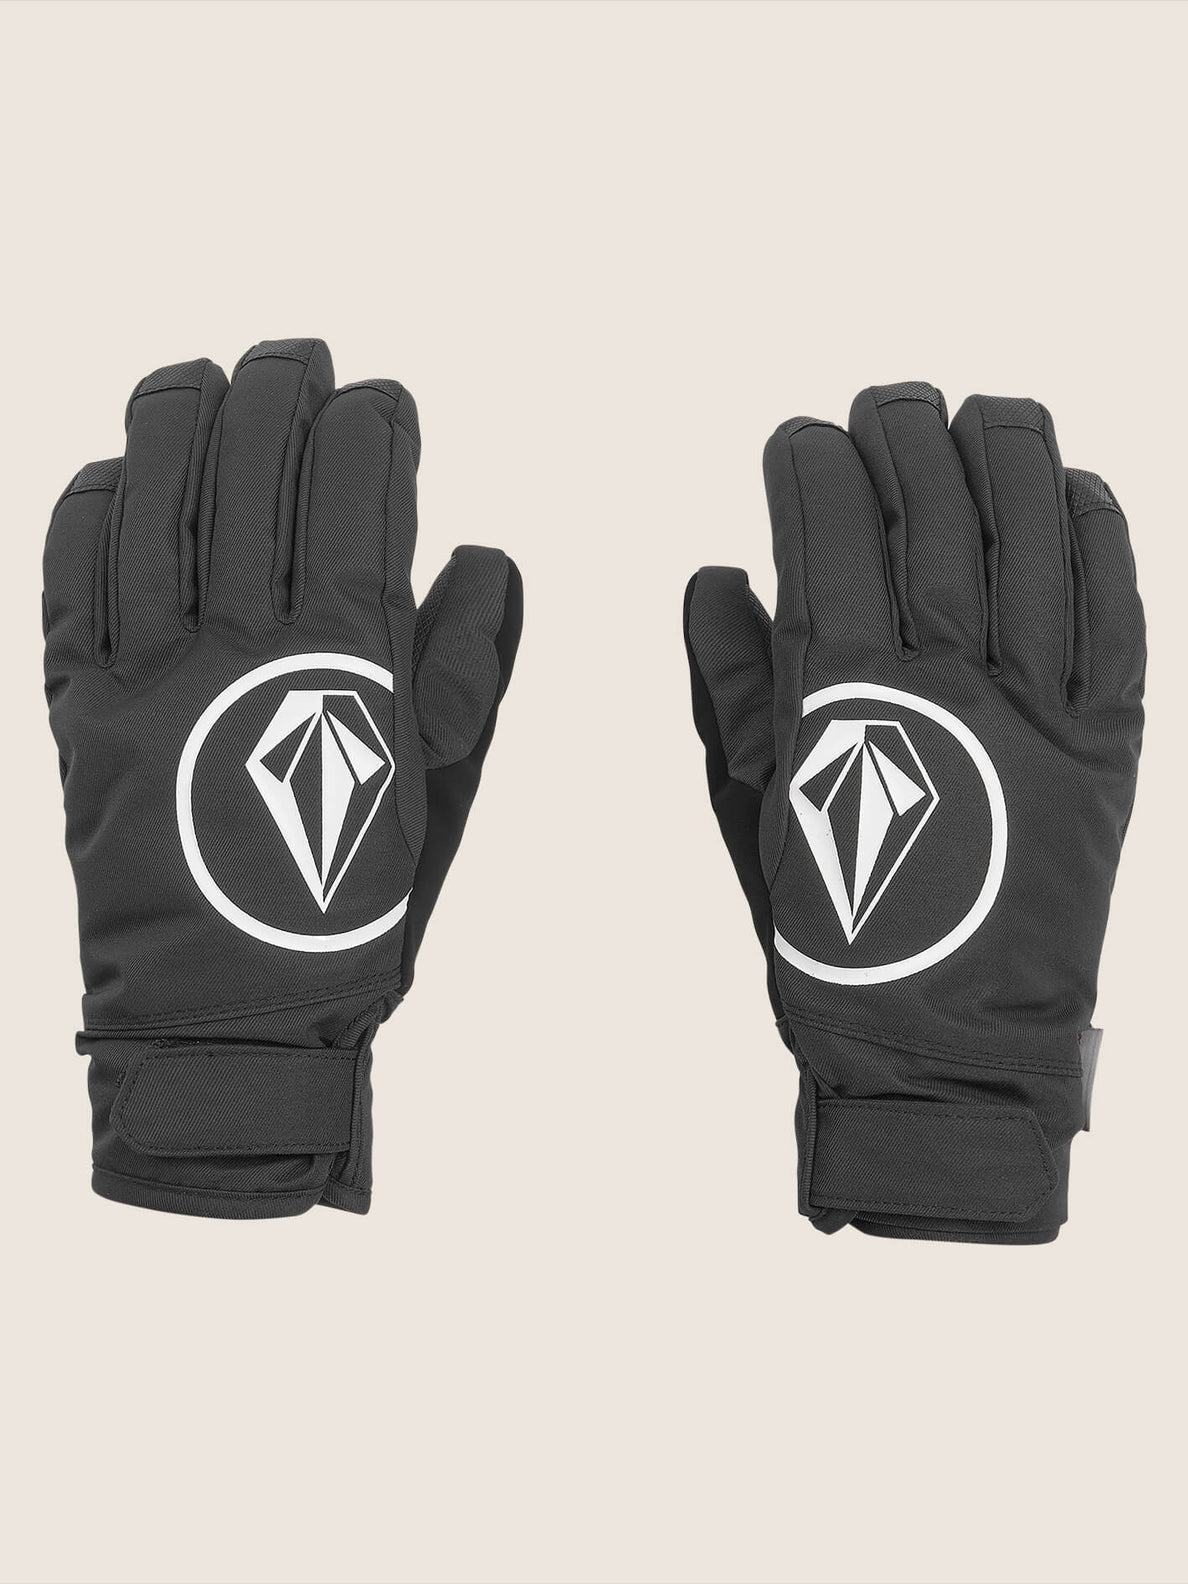 Nyle Glove In Black, Front View